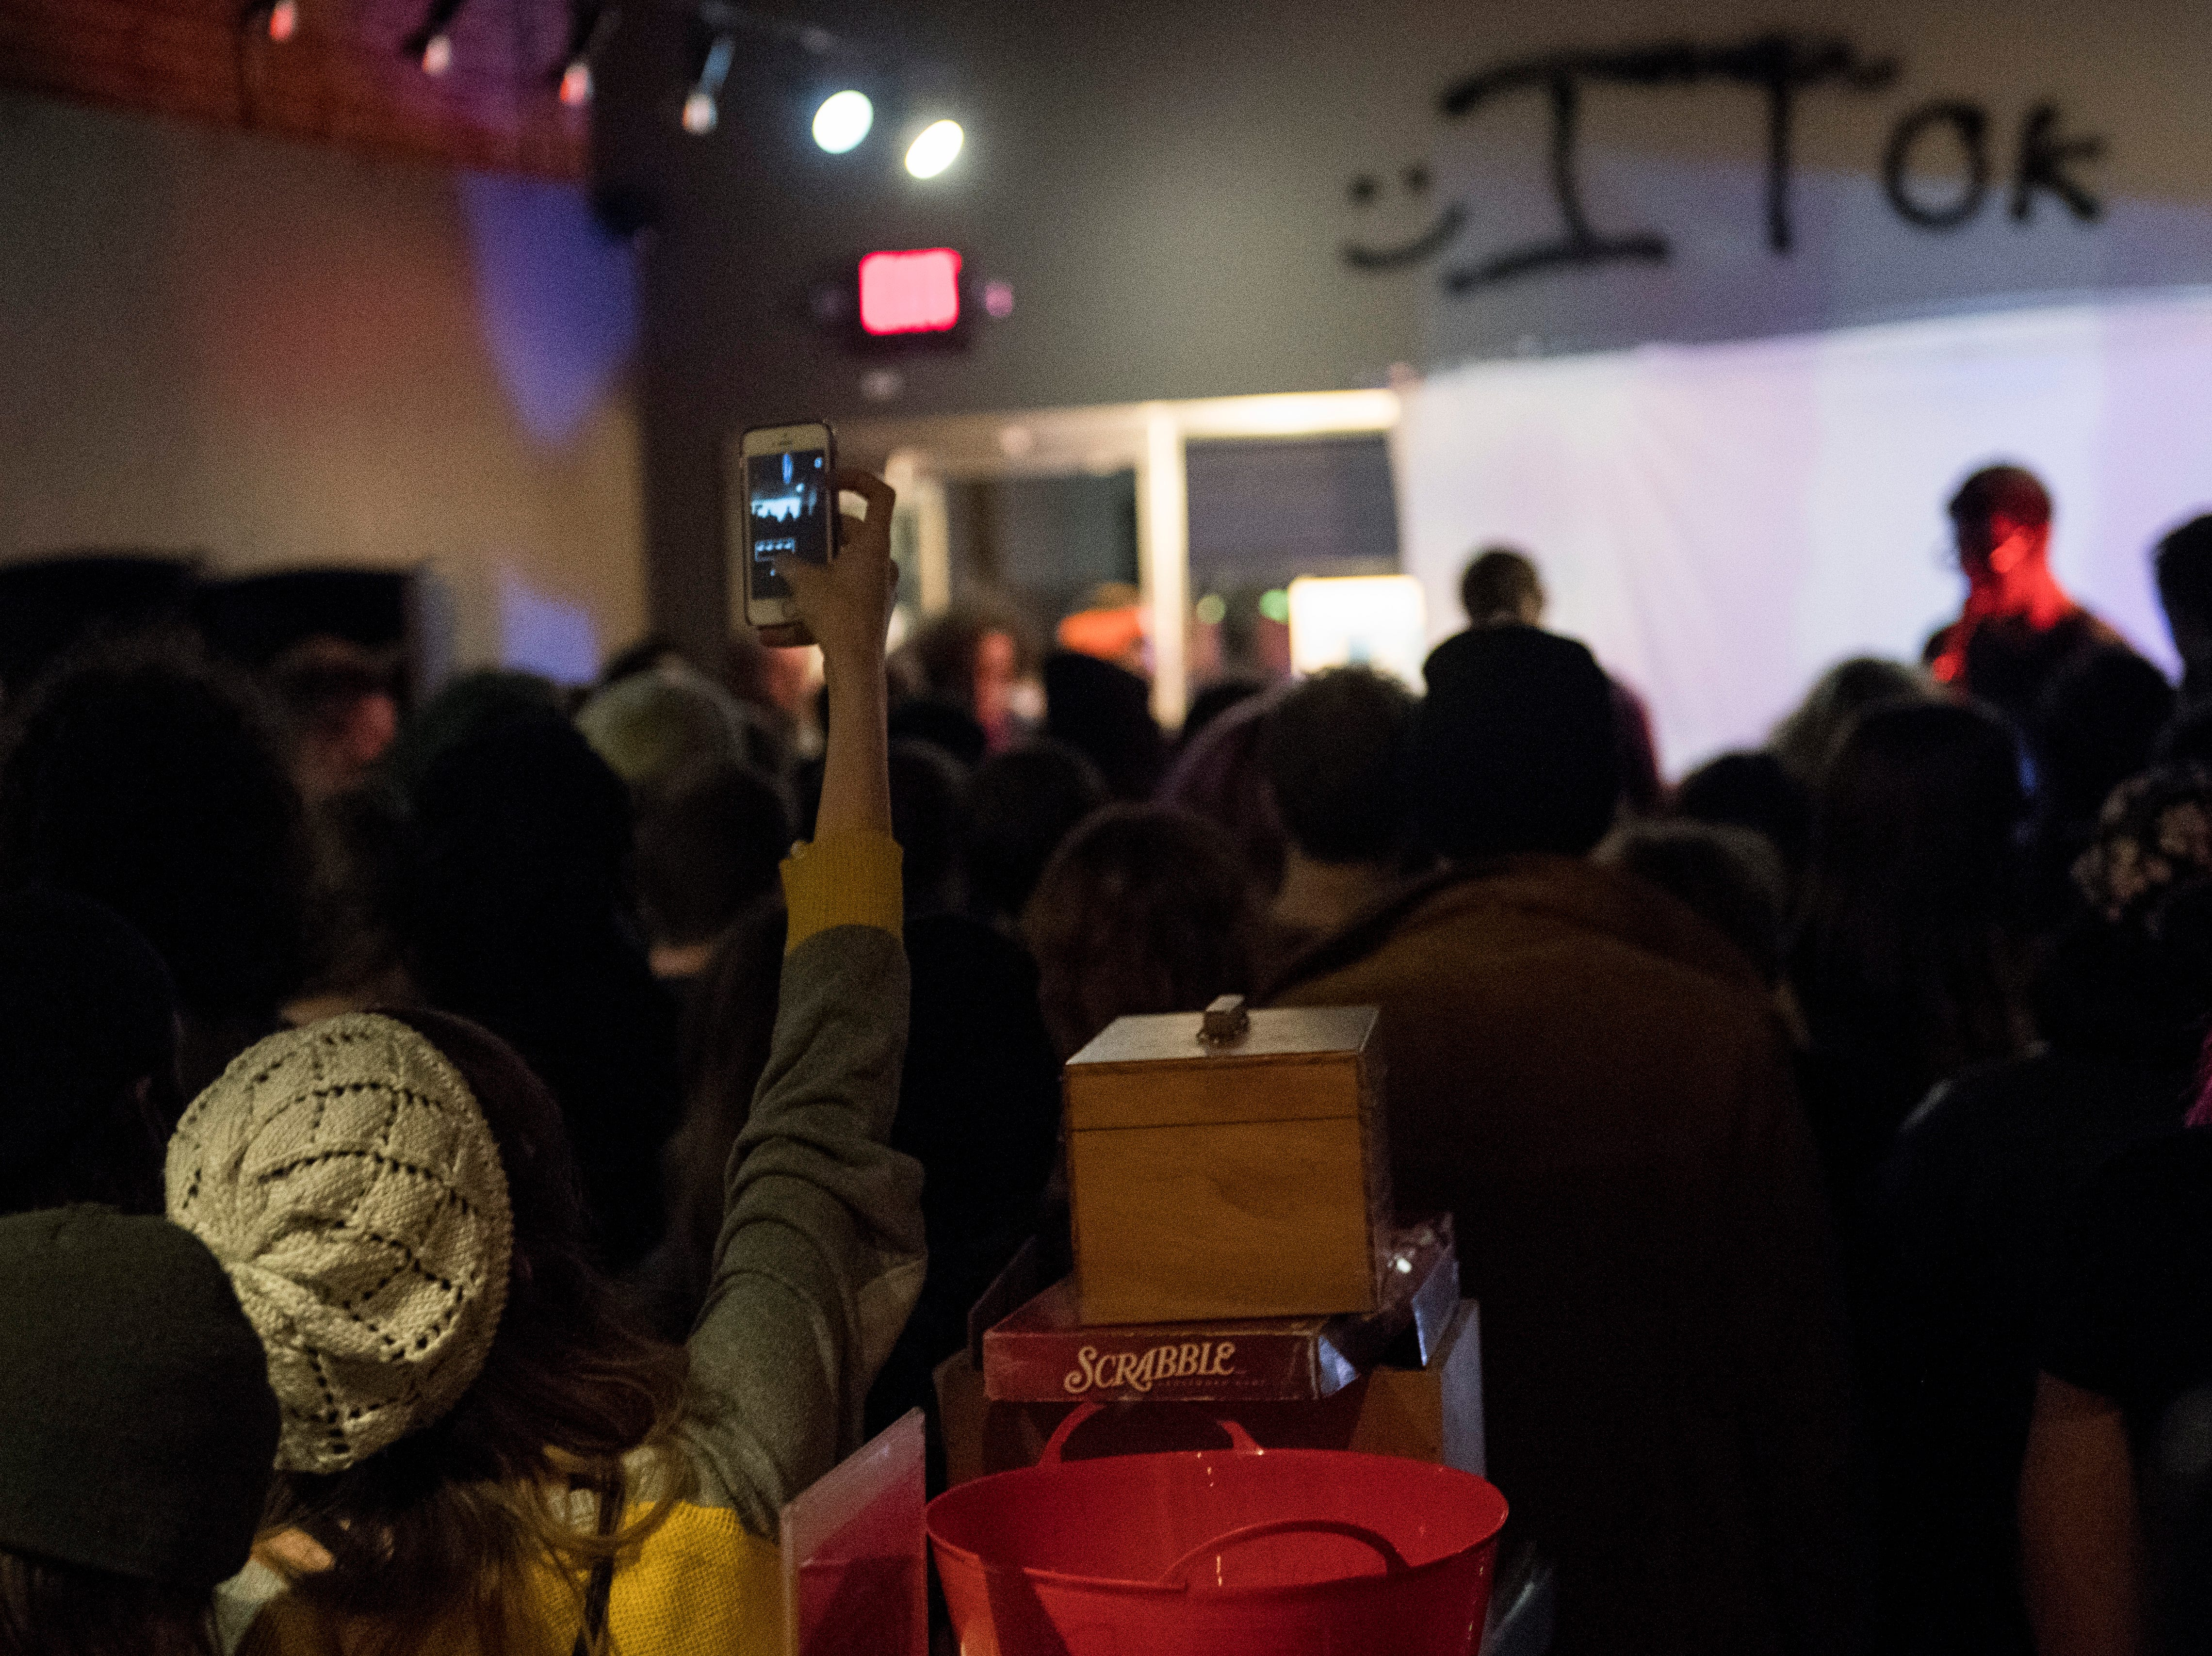 A listener takes video of Thunder Dreamer during their set of the Farewell Weekend show at PG Saturday, Dec. 29, 2018. PG -- a cafe, art and music venue -- opened March 15, 2013, and has served as a gathering place for the creative community in Evansville. Their final day open is Monday, Dec. 31, 2018.